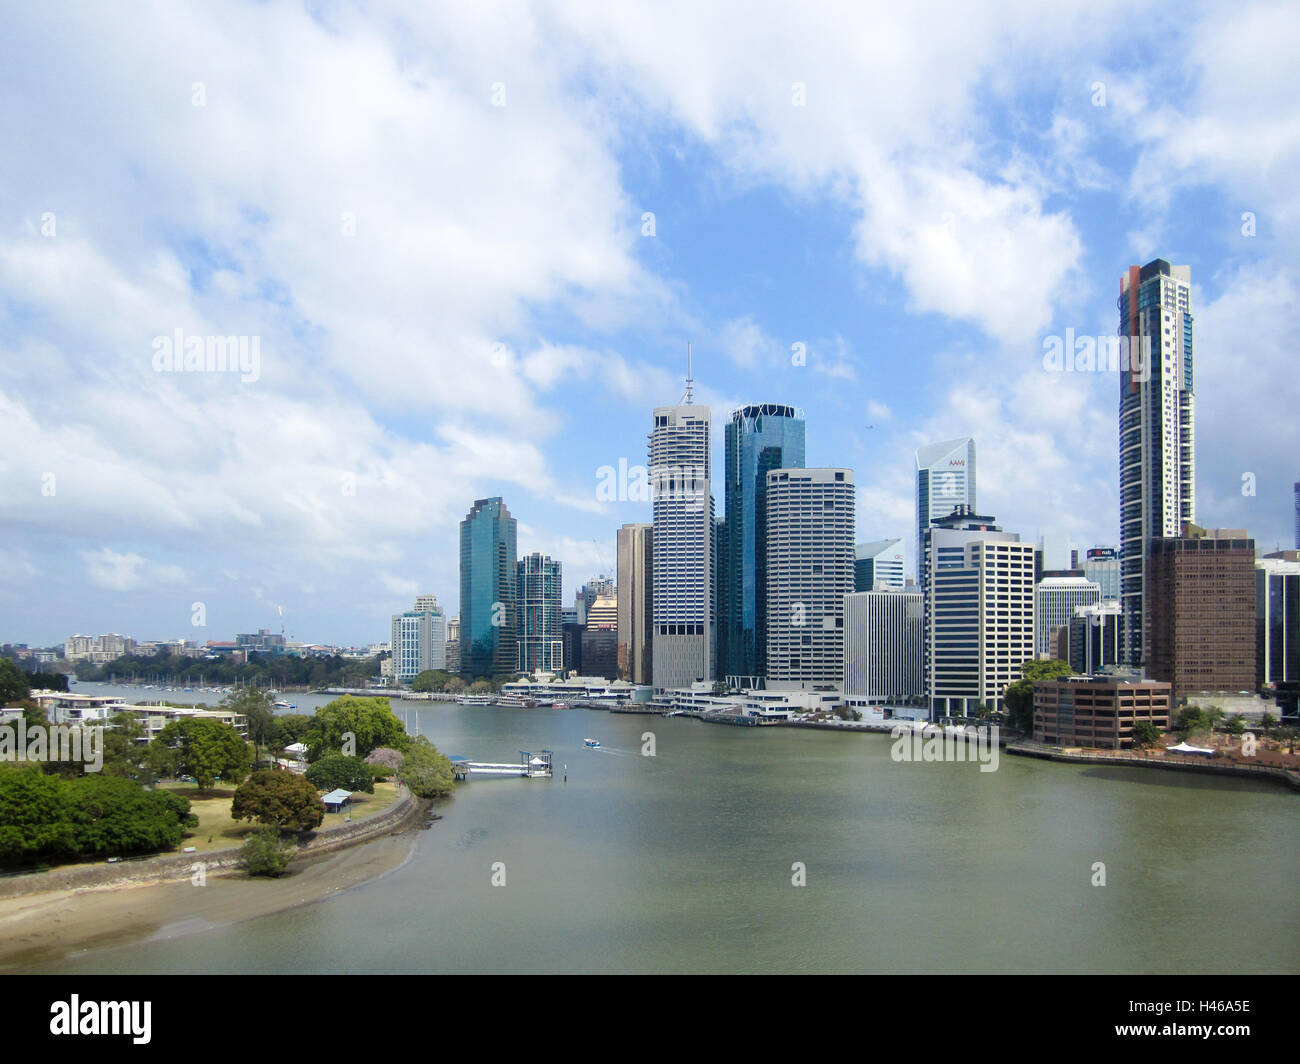 Brisbane business district, overlooking the meandering Brisbane River, Queensland, Australia. - Stock Image